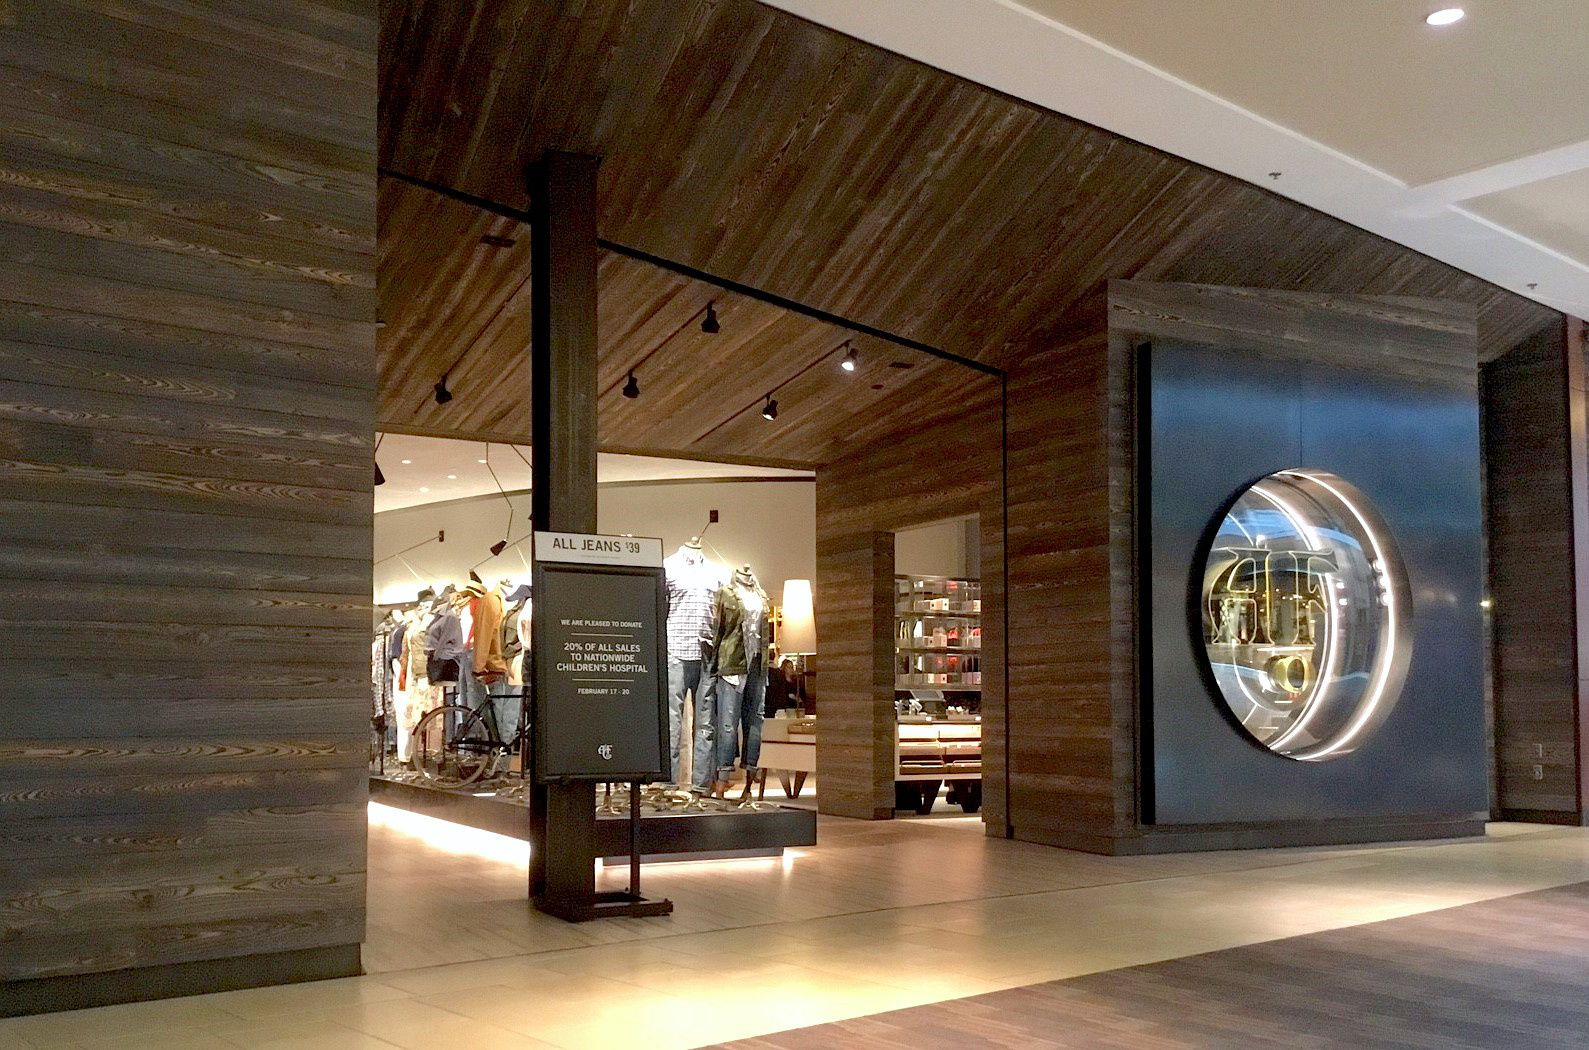 Abercrombie Fitch In Columbus Ohio Used Delta Millwork S Cypress Tiger Smooth Burnt Wood Paneling Learn More About Our Spec Millwork Wood Paneling Columbus